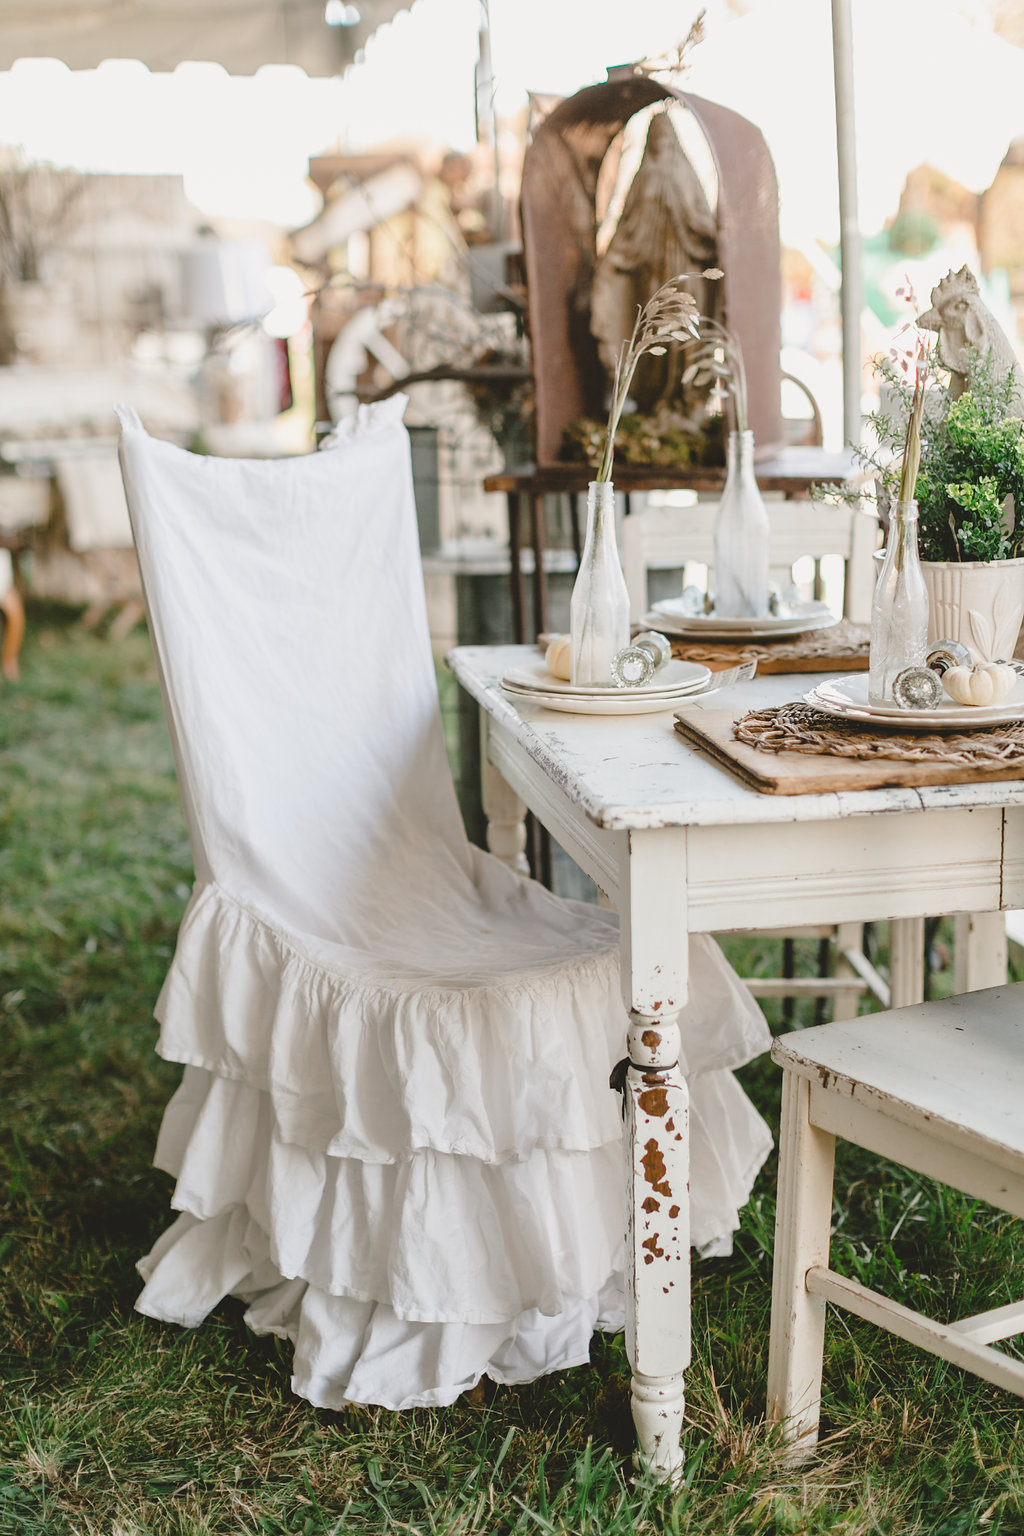 Booth of J. Hill Designs, TX